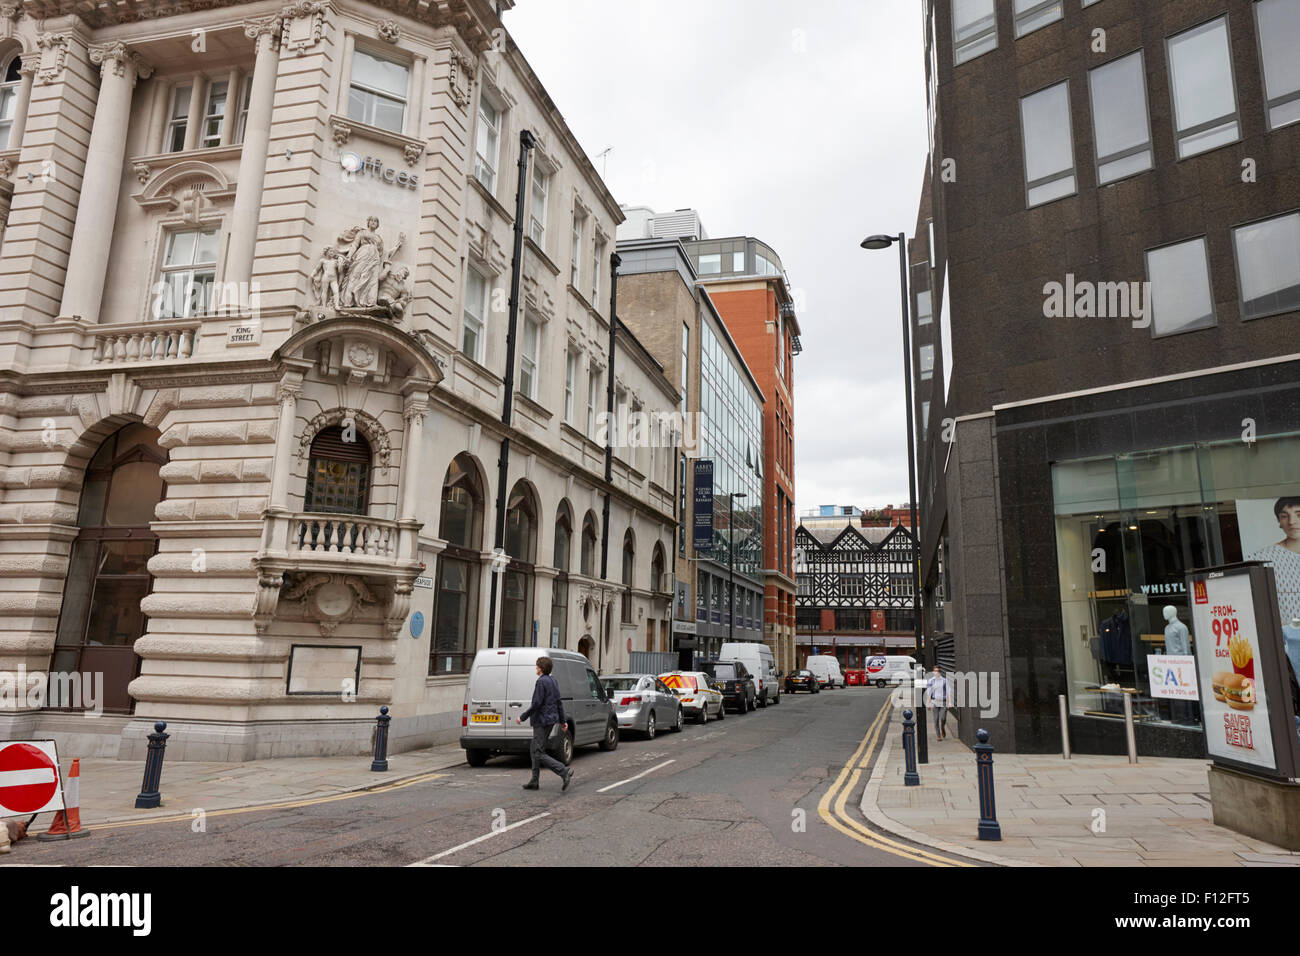 cheapside Manchester city centre uk - Stock Image